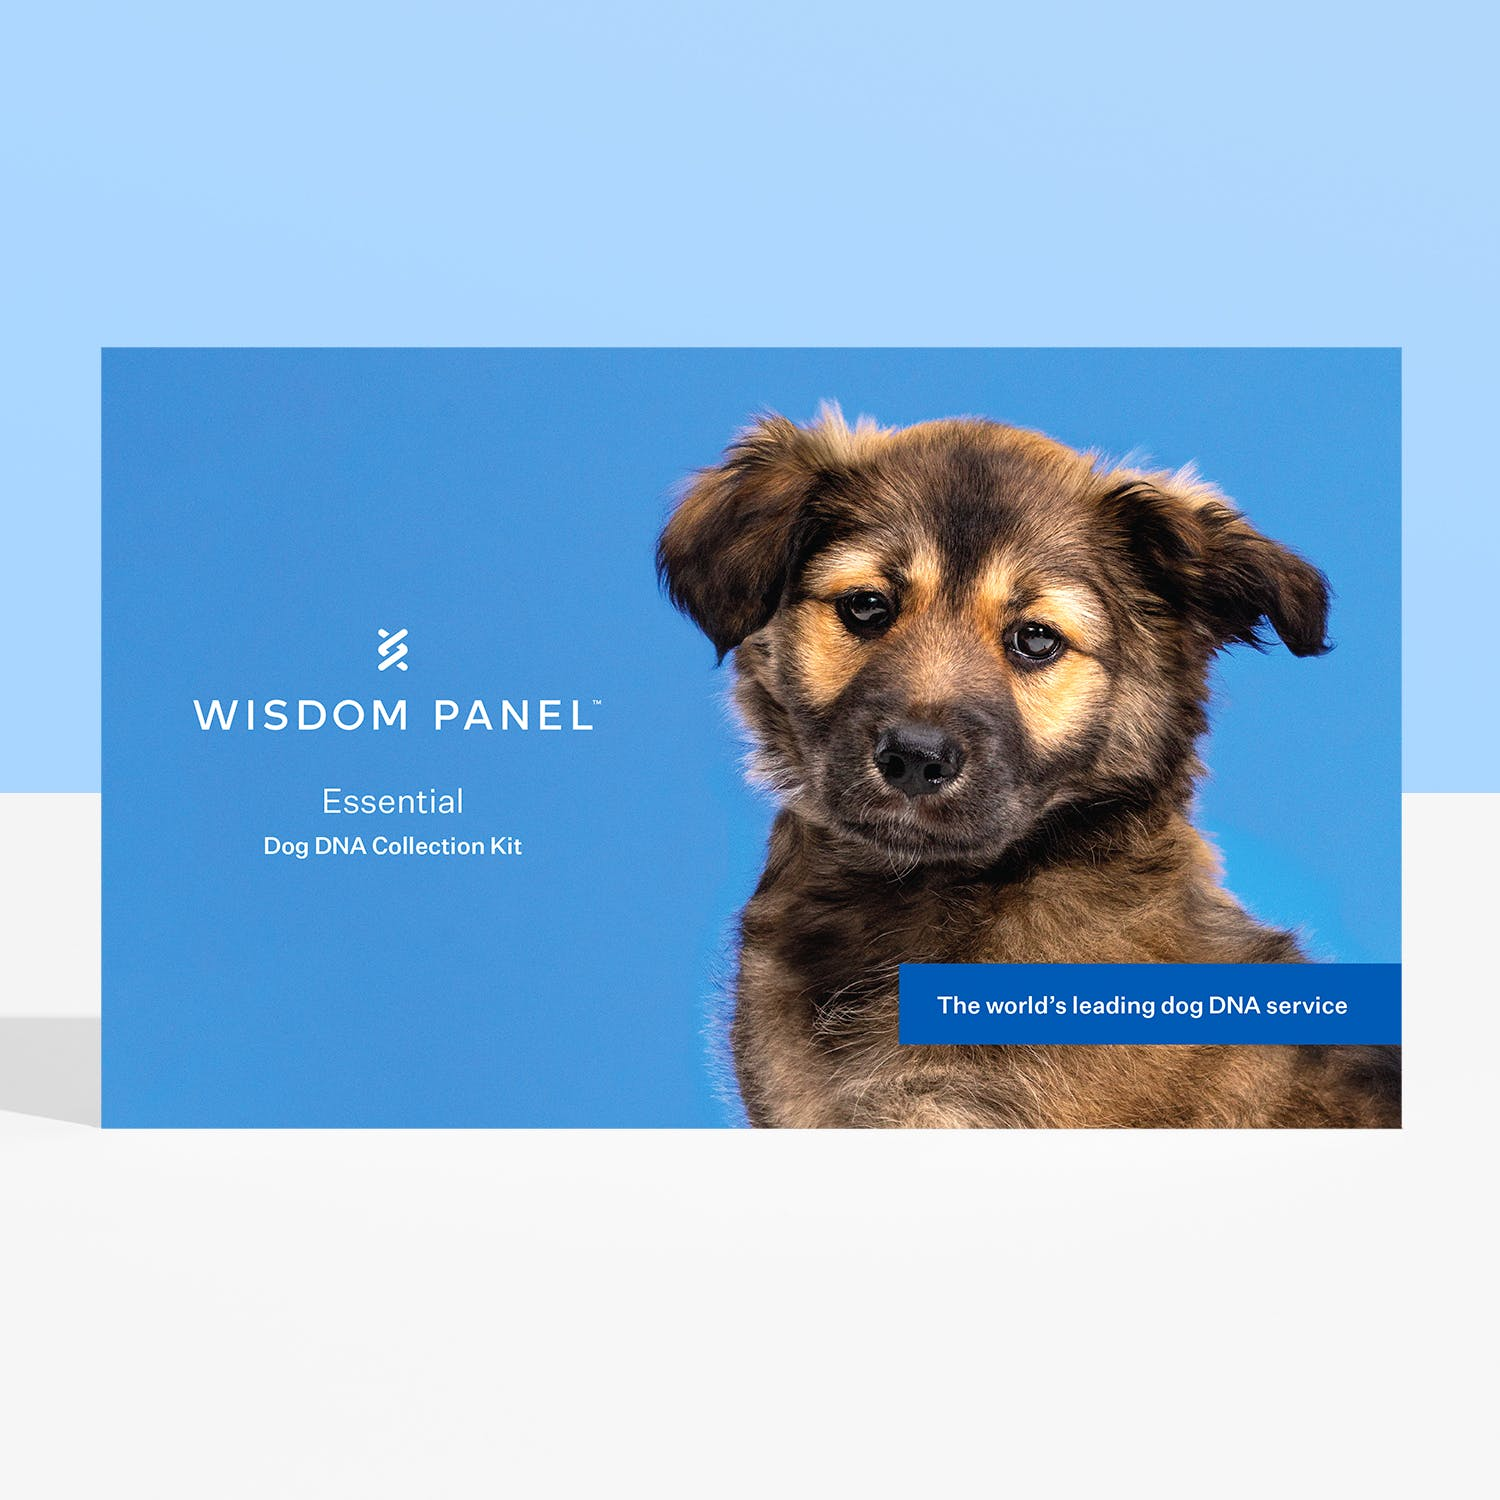 Wisdom Panel Essential DNA test for dogs collection kit